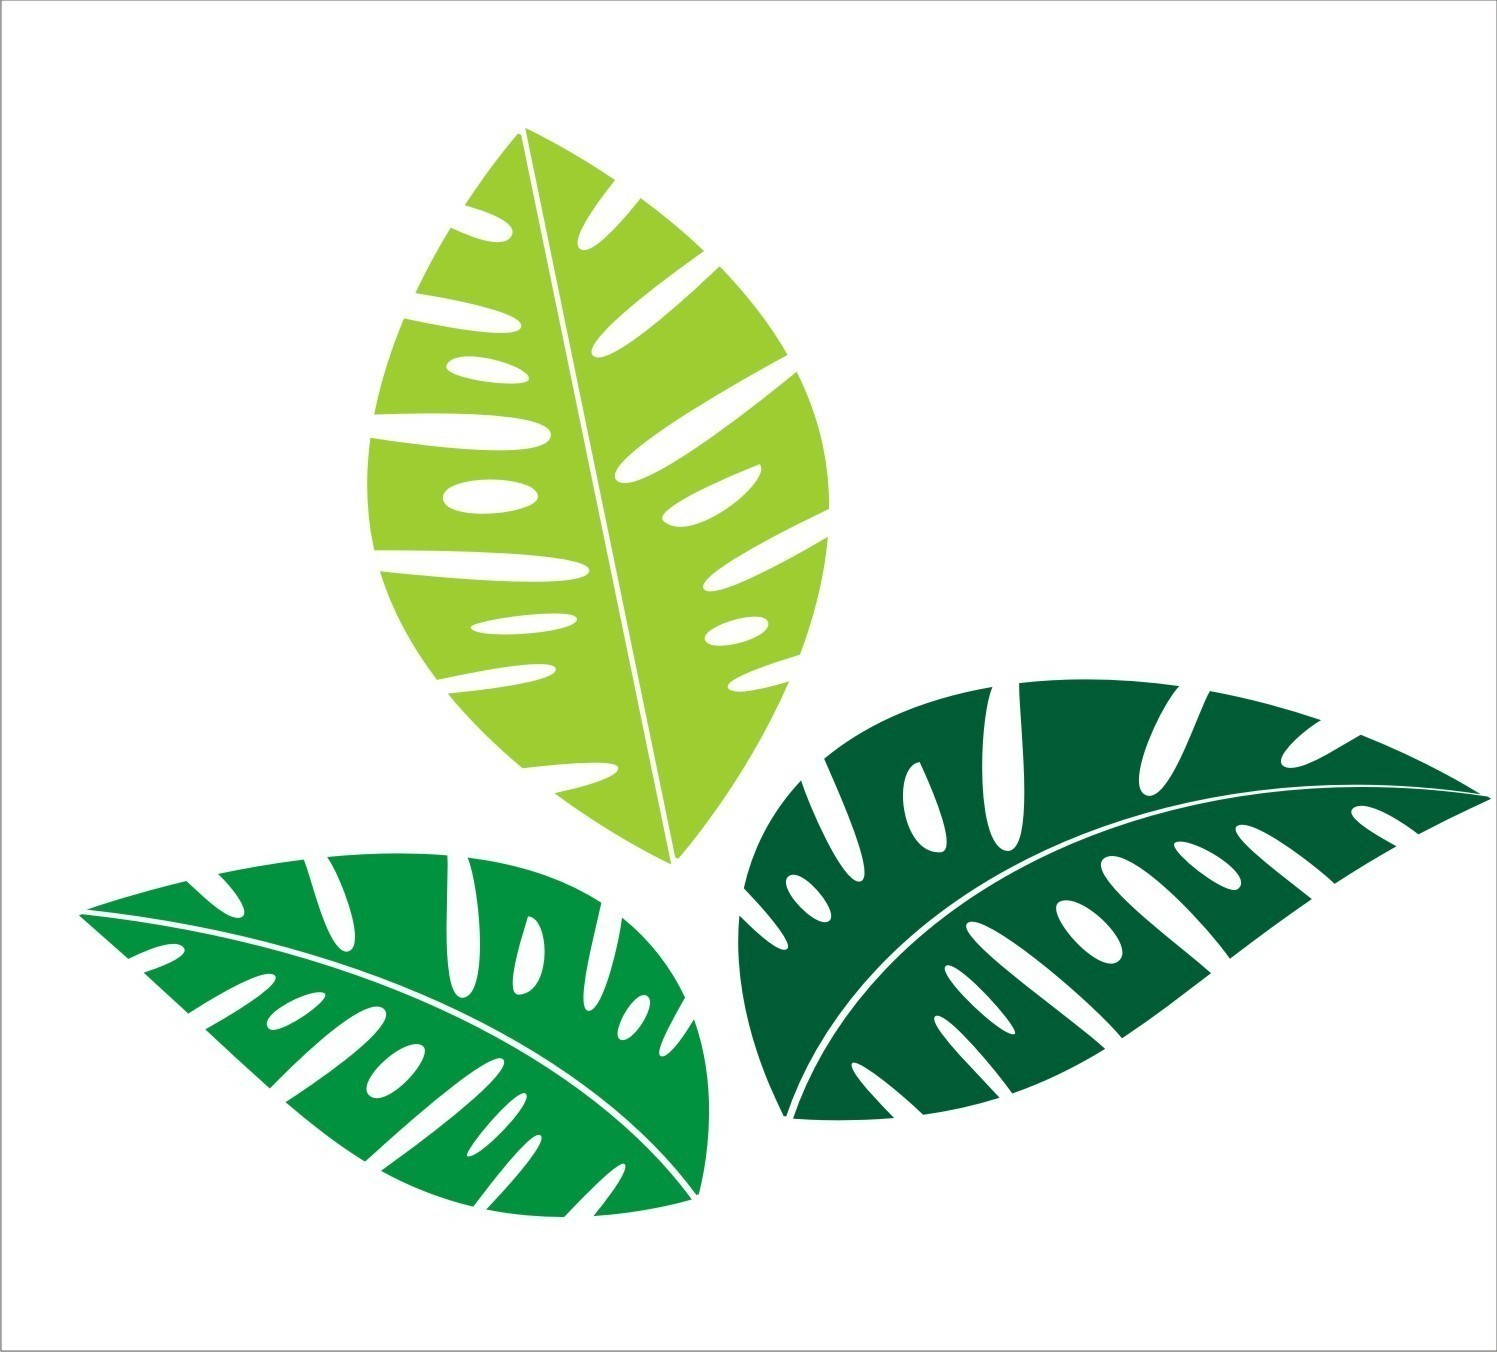 Monstera leaf clipart image royalty free Free Tropical Leaf Cliparts, Download Free Clip Art, Free Clip Art ... image royalty free